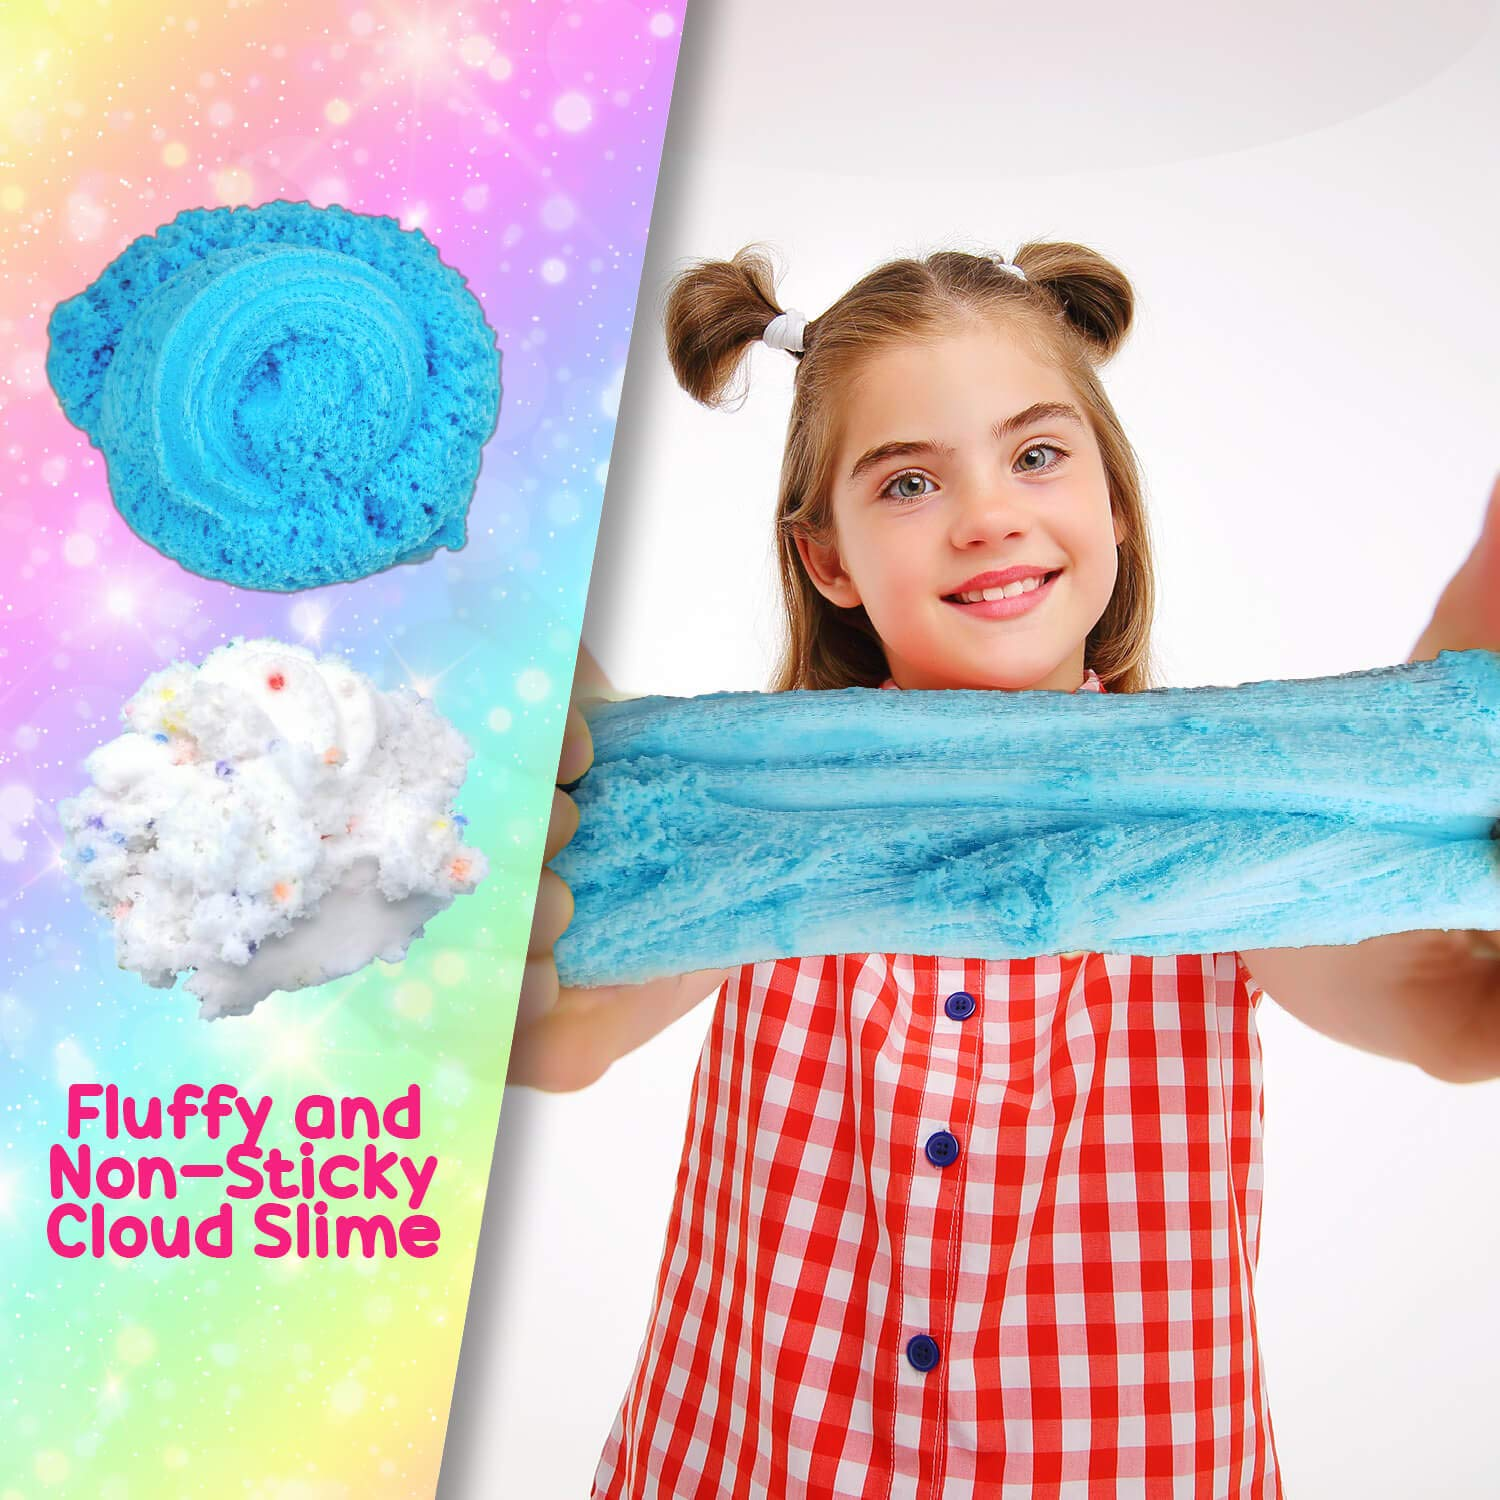 Fluffy Cloud Slime - Birthday Cake Scented - Non - Sticky Made in The USA 8 oz by  Unitoots Slime Company (Image #5)